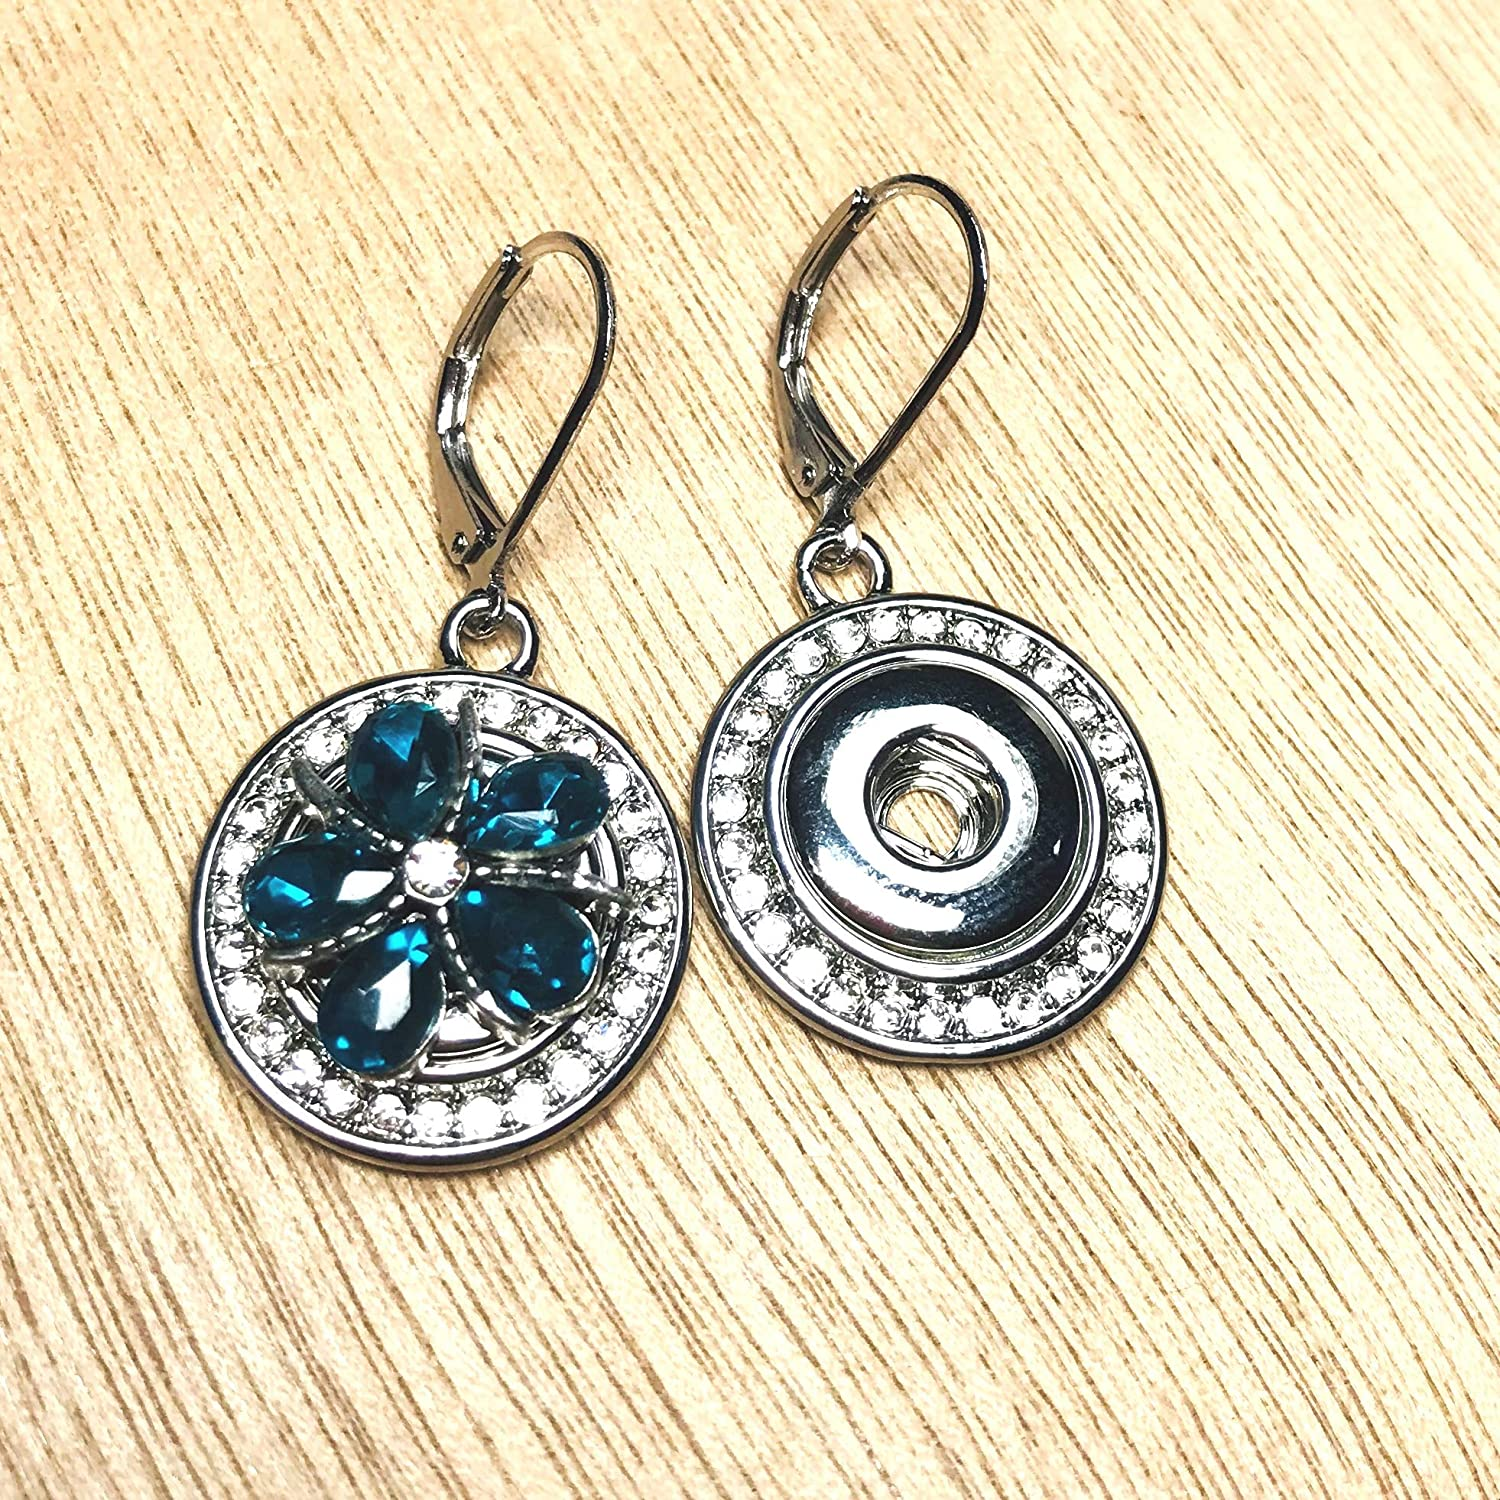 Mini Snap Jewelry Lever back Earrings Rhinestone Halo fits 12mm Petite Ginger Style Charms My Prime Gifts